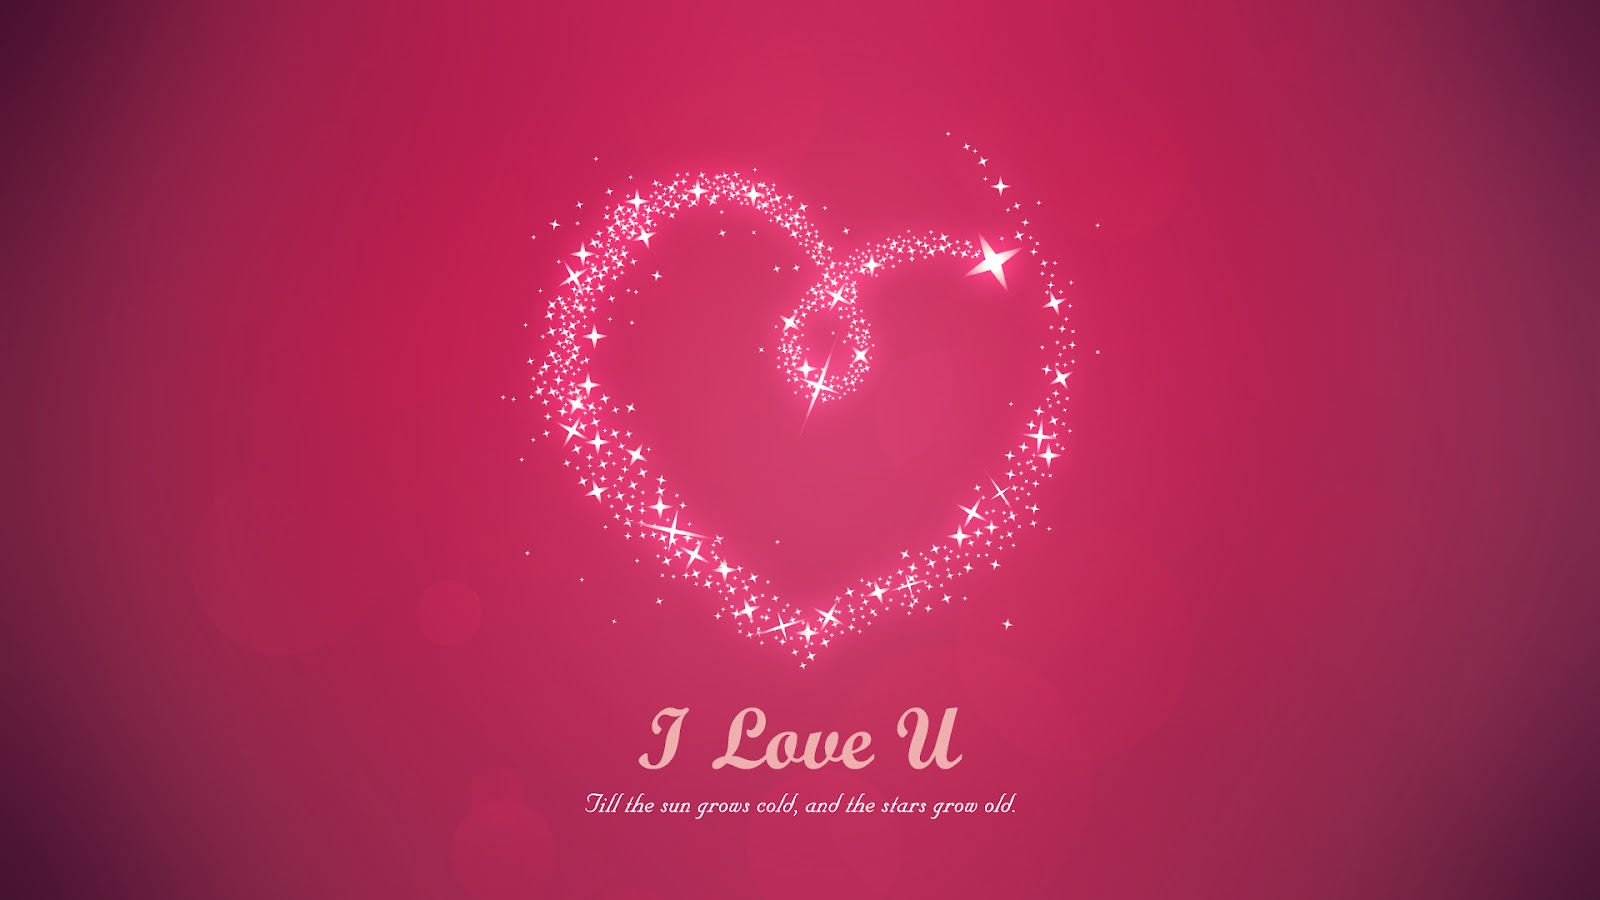 Real Love Quotes Wallpaper : i love u wallpapers love wallpapers love quotes ...